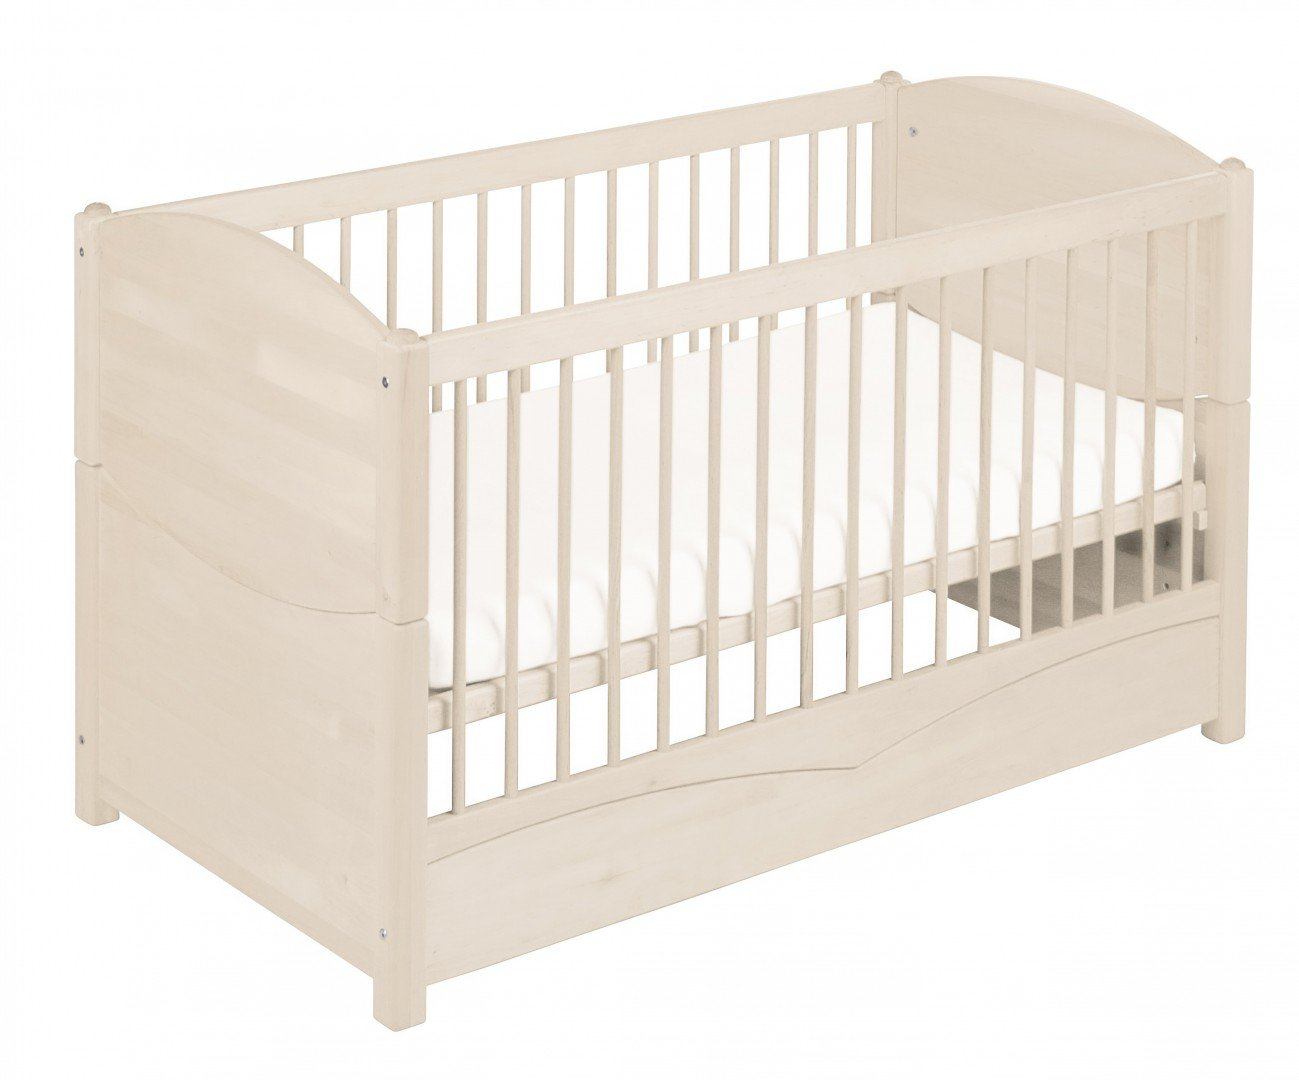 BioKinder 22128 Bed for babies and toddlers Luca from biological wood Bio-Kinder Bed Luca for Babies and Toddlers Adjustable height. 3 removable bars. Various features Sustainable solid biological wood (alder/pine). Biological finish 3